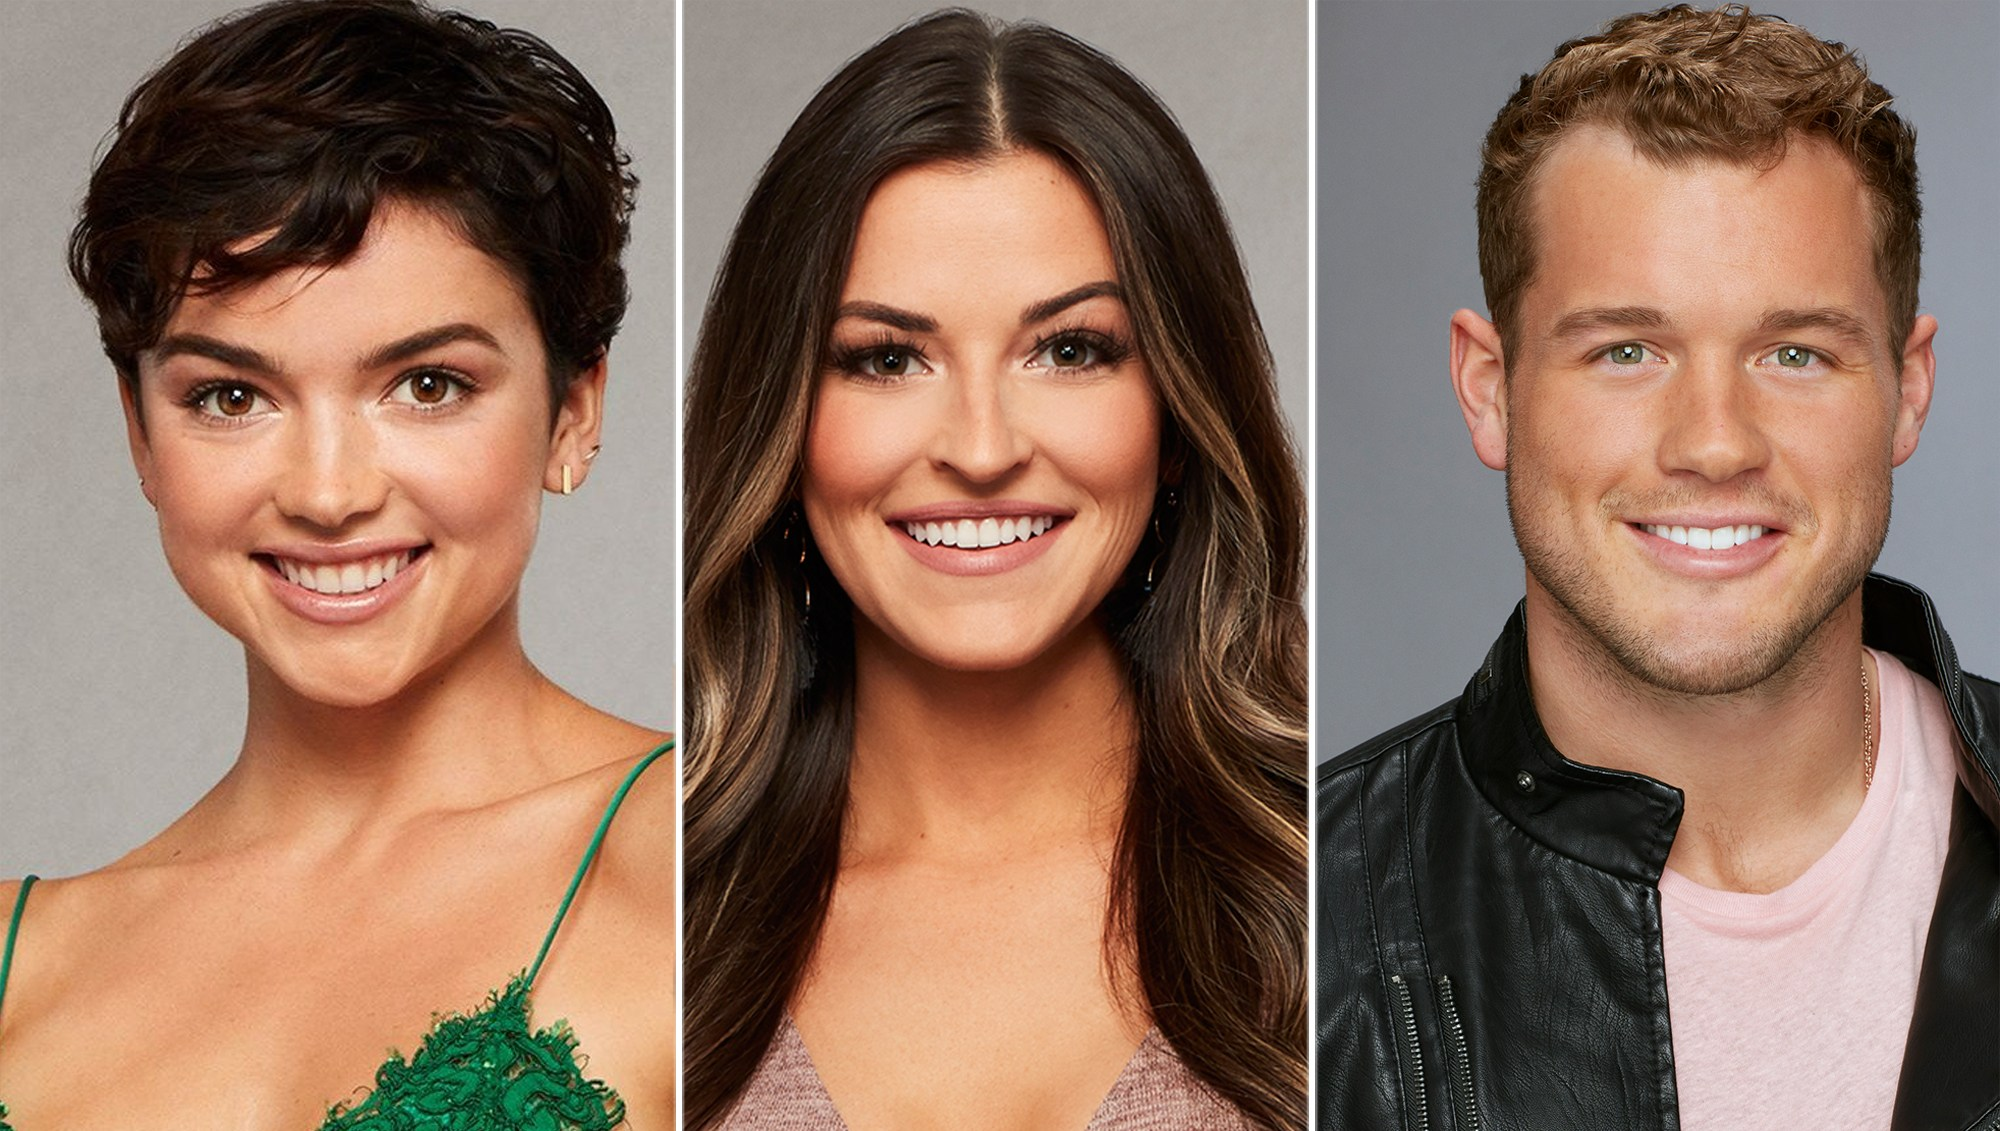 Bekah Martinez, Tia Booth and Colton Underwood